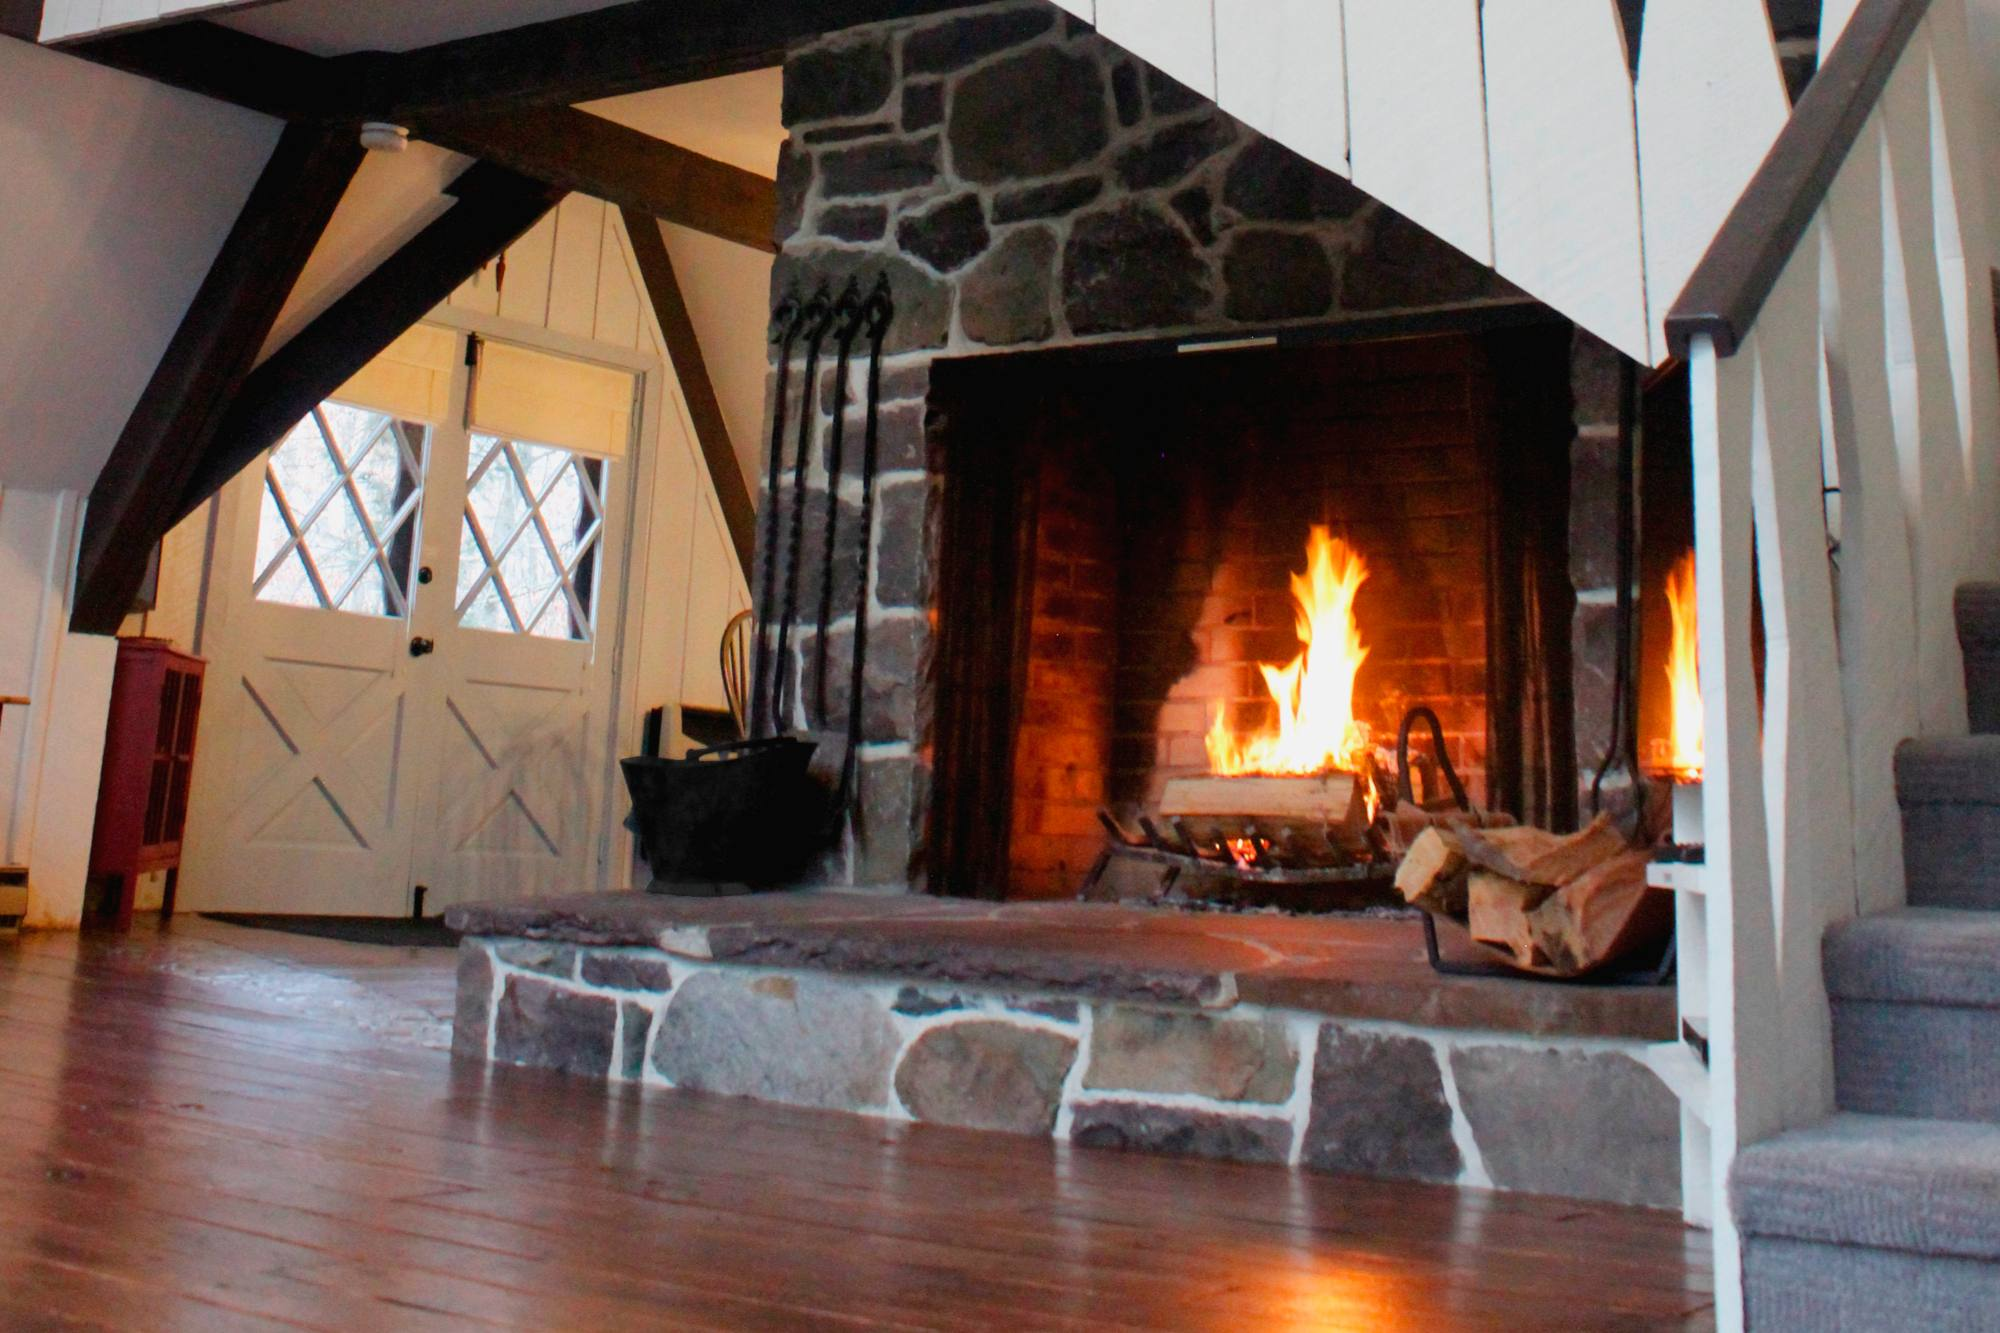 3 Things That Make This a Unique Poconos Vacation Rental